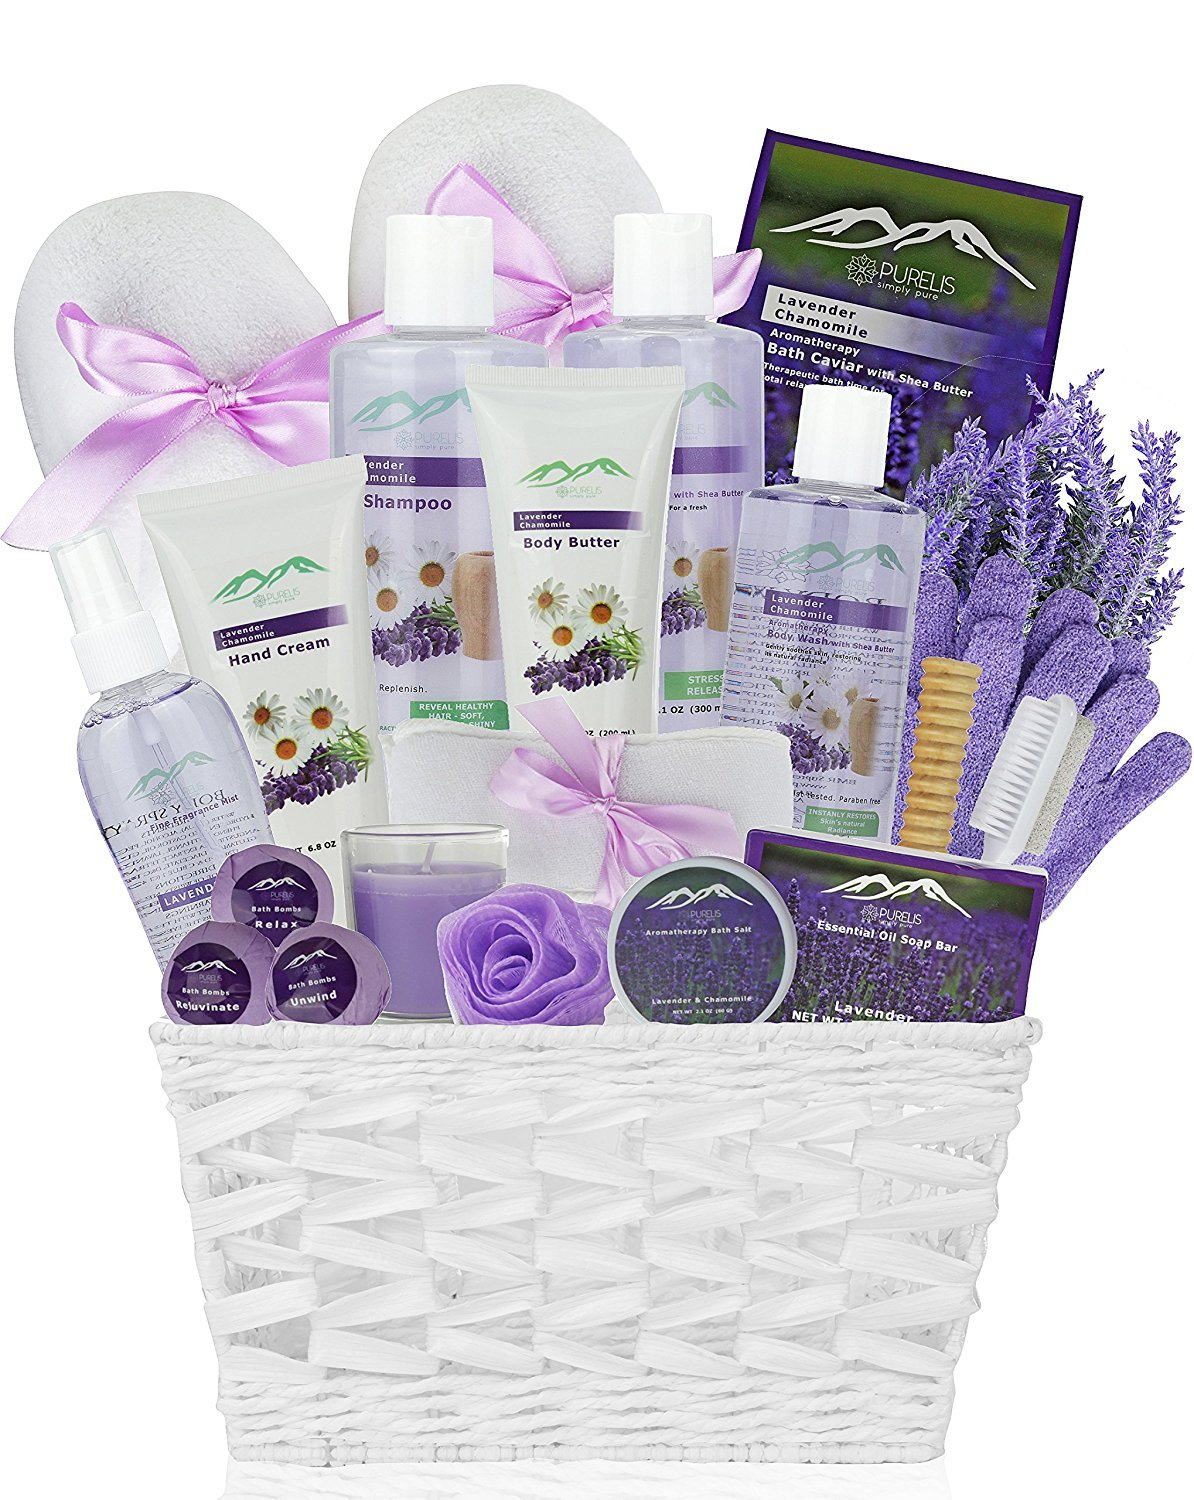 Premium Deluxe Bath & Body Gift Basket. Ultimate Large Spa Basket! #1 Spa Gift Basket for Women (Lavender Chamomile) by Purelis